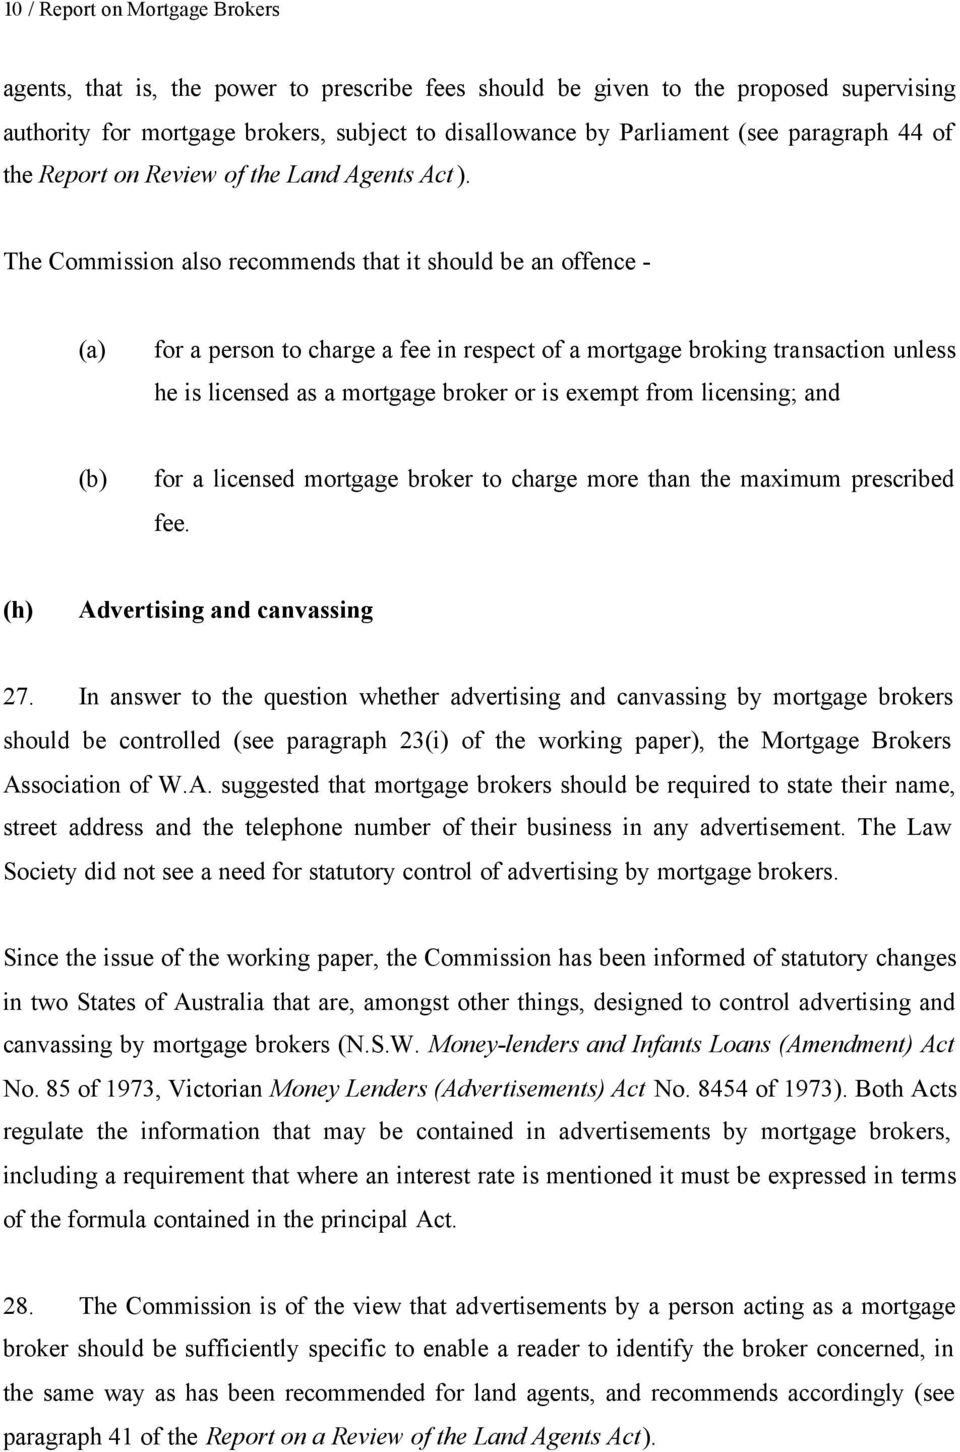 The Commission also recommends that it should be an offence - (a) for a person to charge a fee in respect of a mortgage broking transaction unless he is licensed as a mortgage broker or is exempt